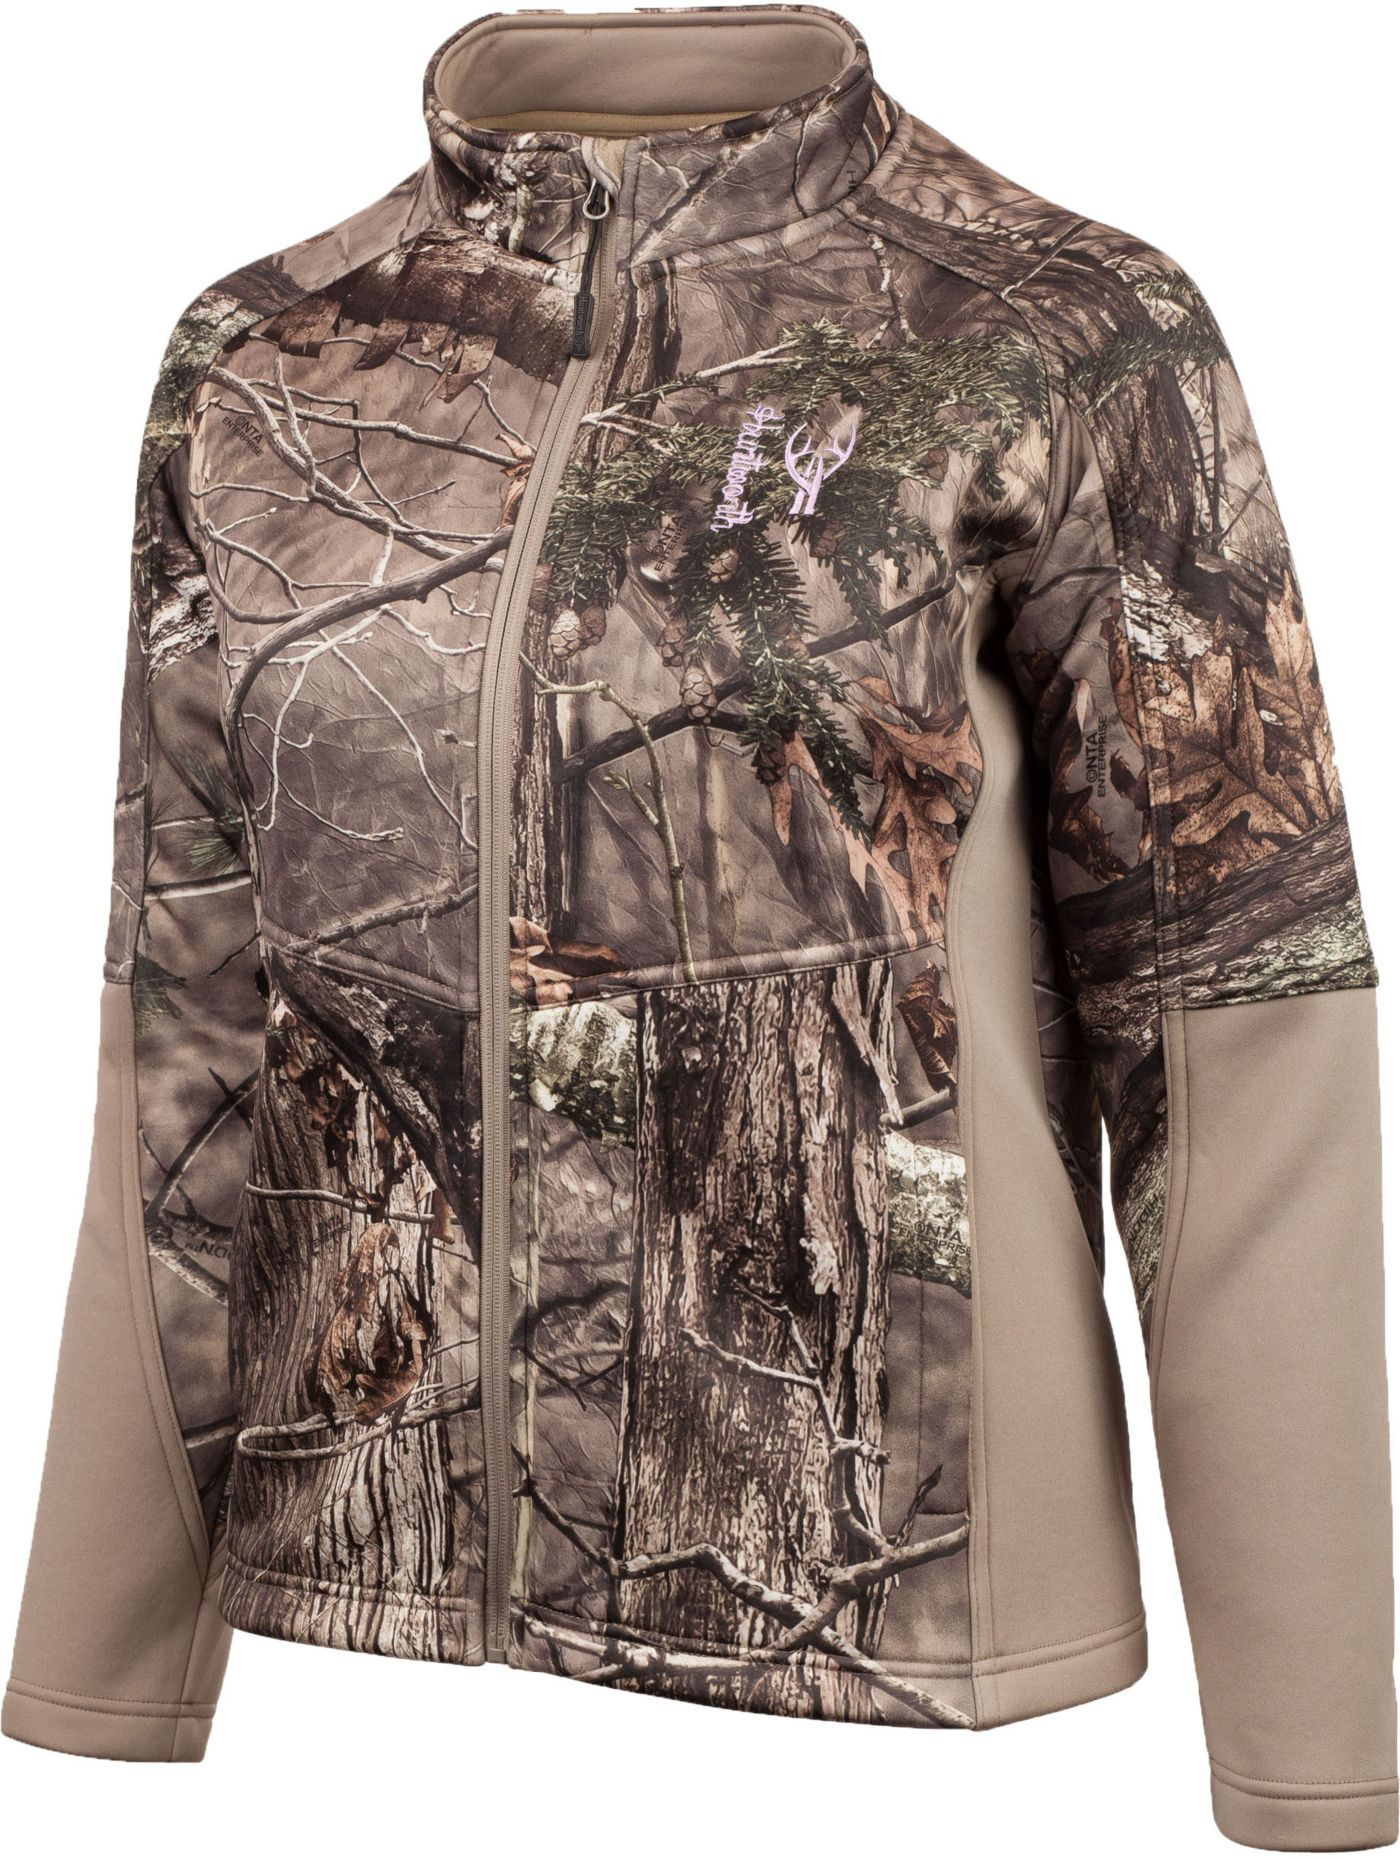 Huntworth Women's Bonded Hunting Jacket